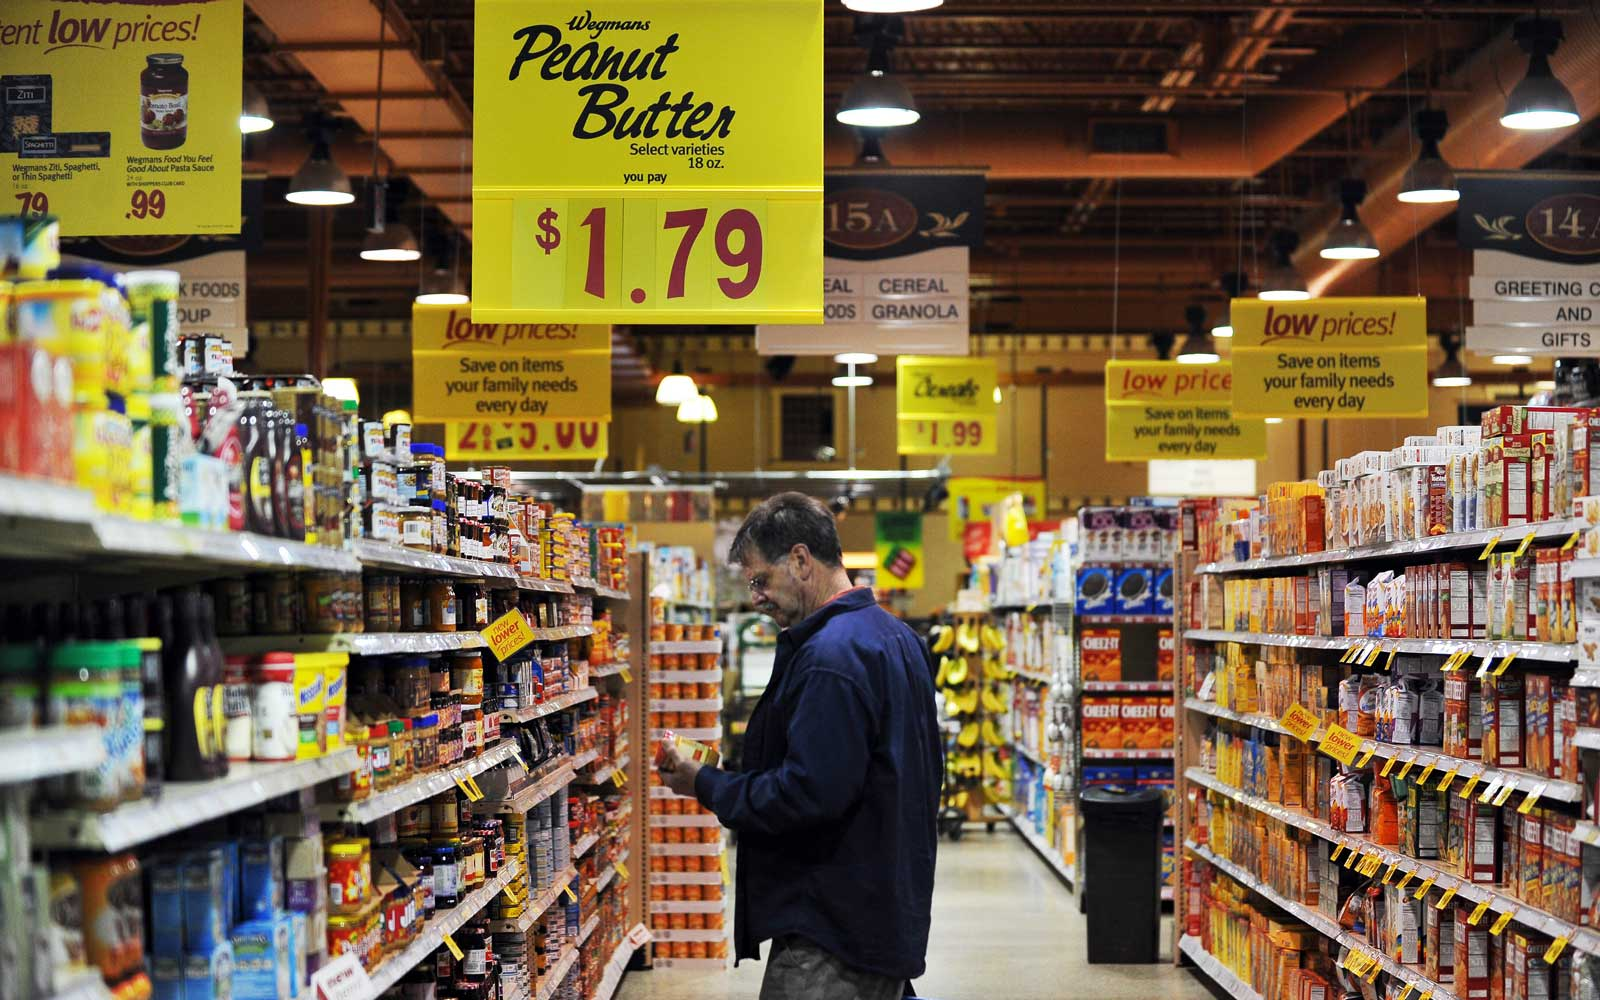 11 Things You Probably Don't Know About Wegmans, but Should